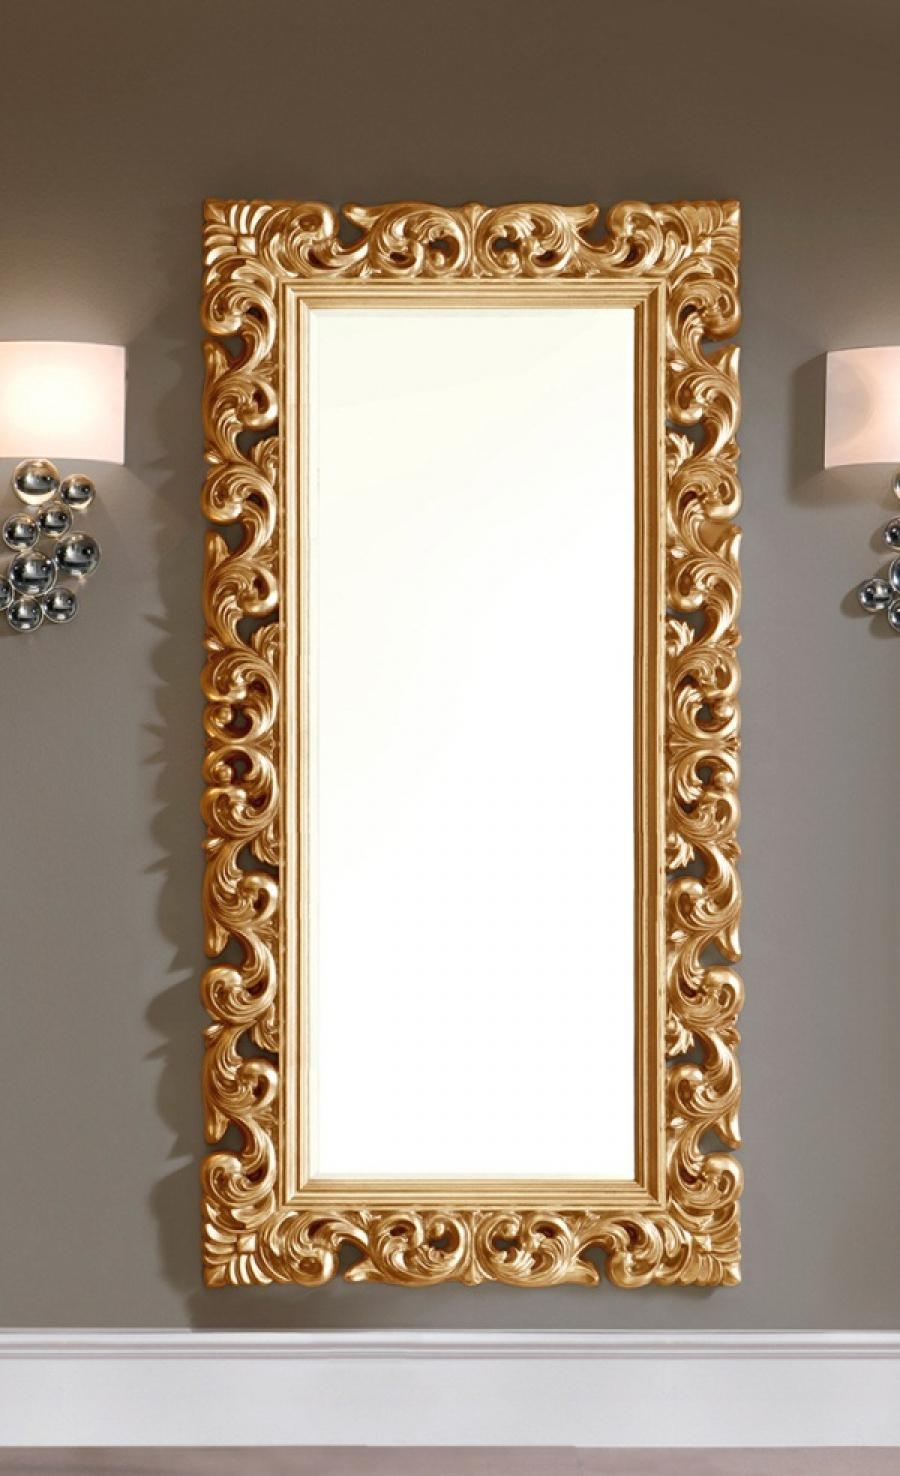 15 Photos Large Ornate Gold Mirror Mirror Ideas